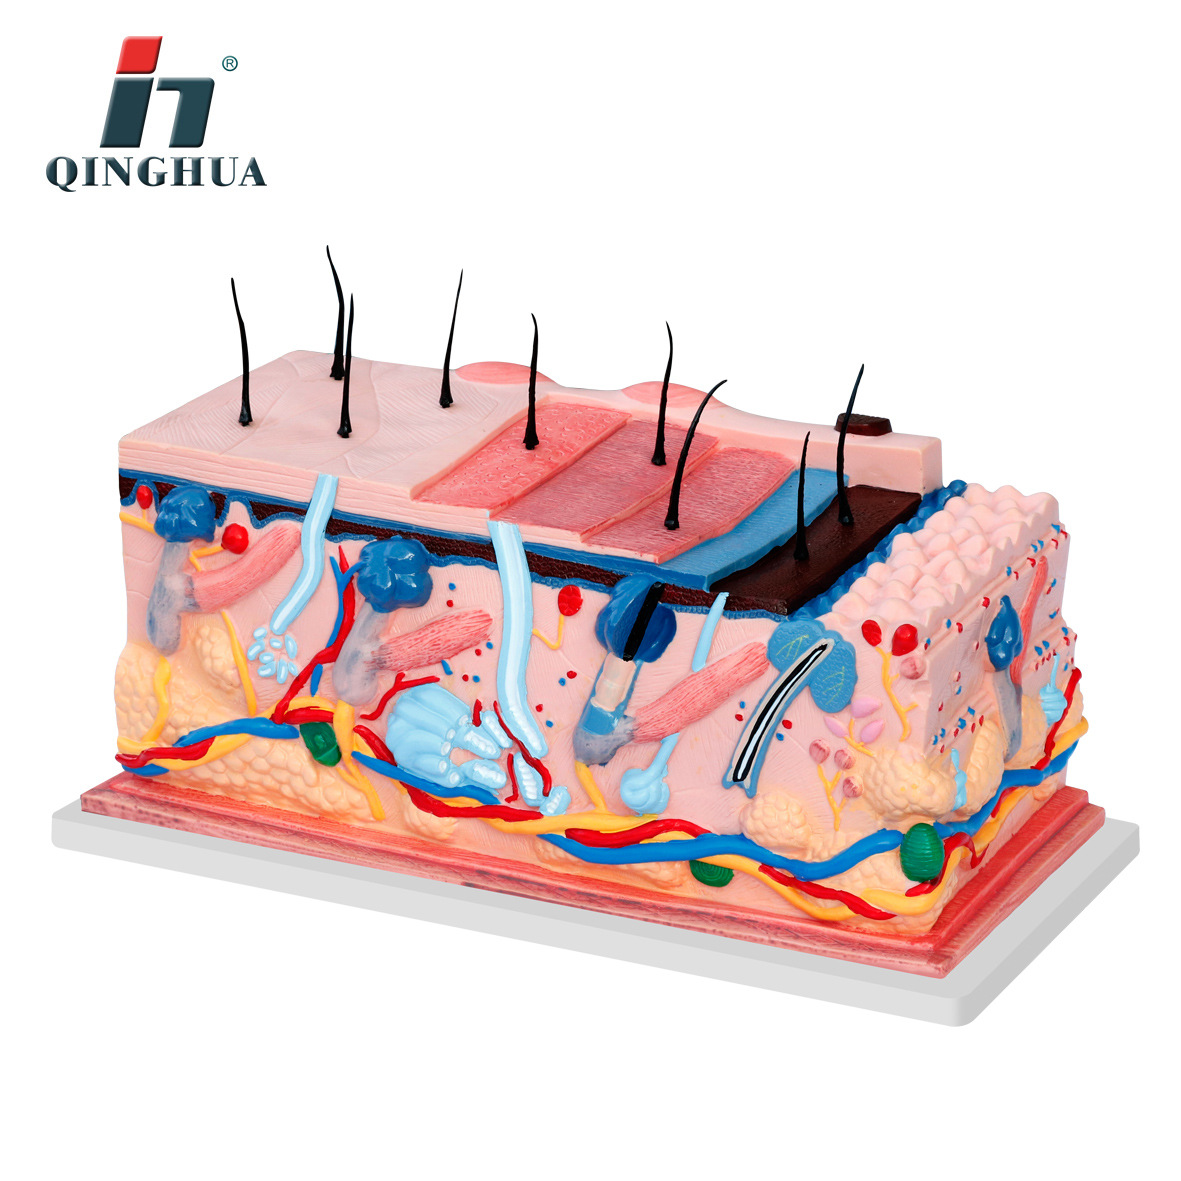 Skin Structure Model With Pores With Hair Biology Teaching Demonstration Medical Science clock table model teacher demonstration with primary school mathematics science and education equipment three needle linkage